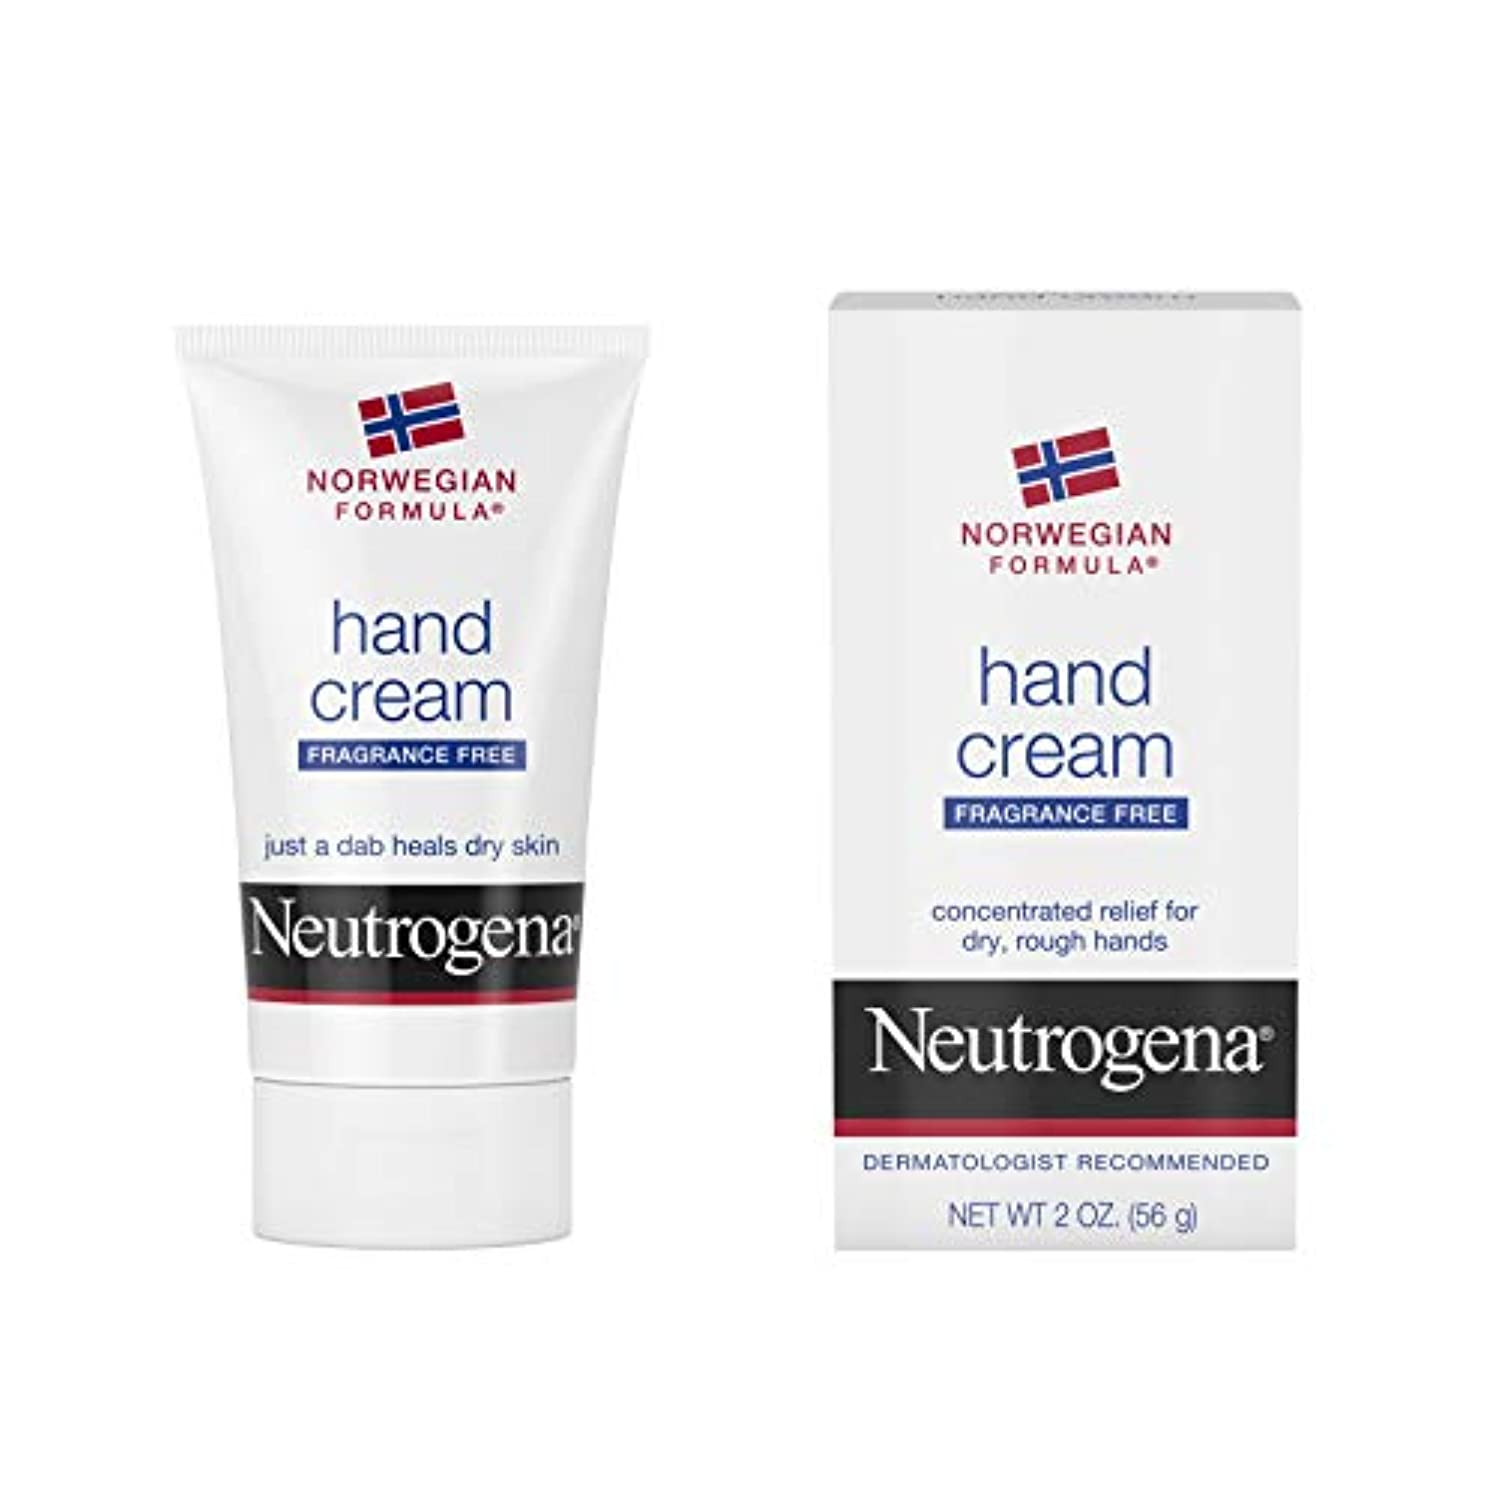 悲観的晴れラダNeutrogena Norwegian Formula Hand Cream Fragrance-Free 60 ml (並行輸入品)